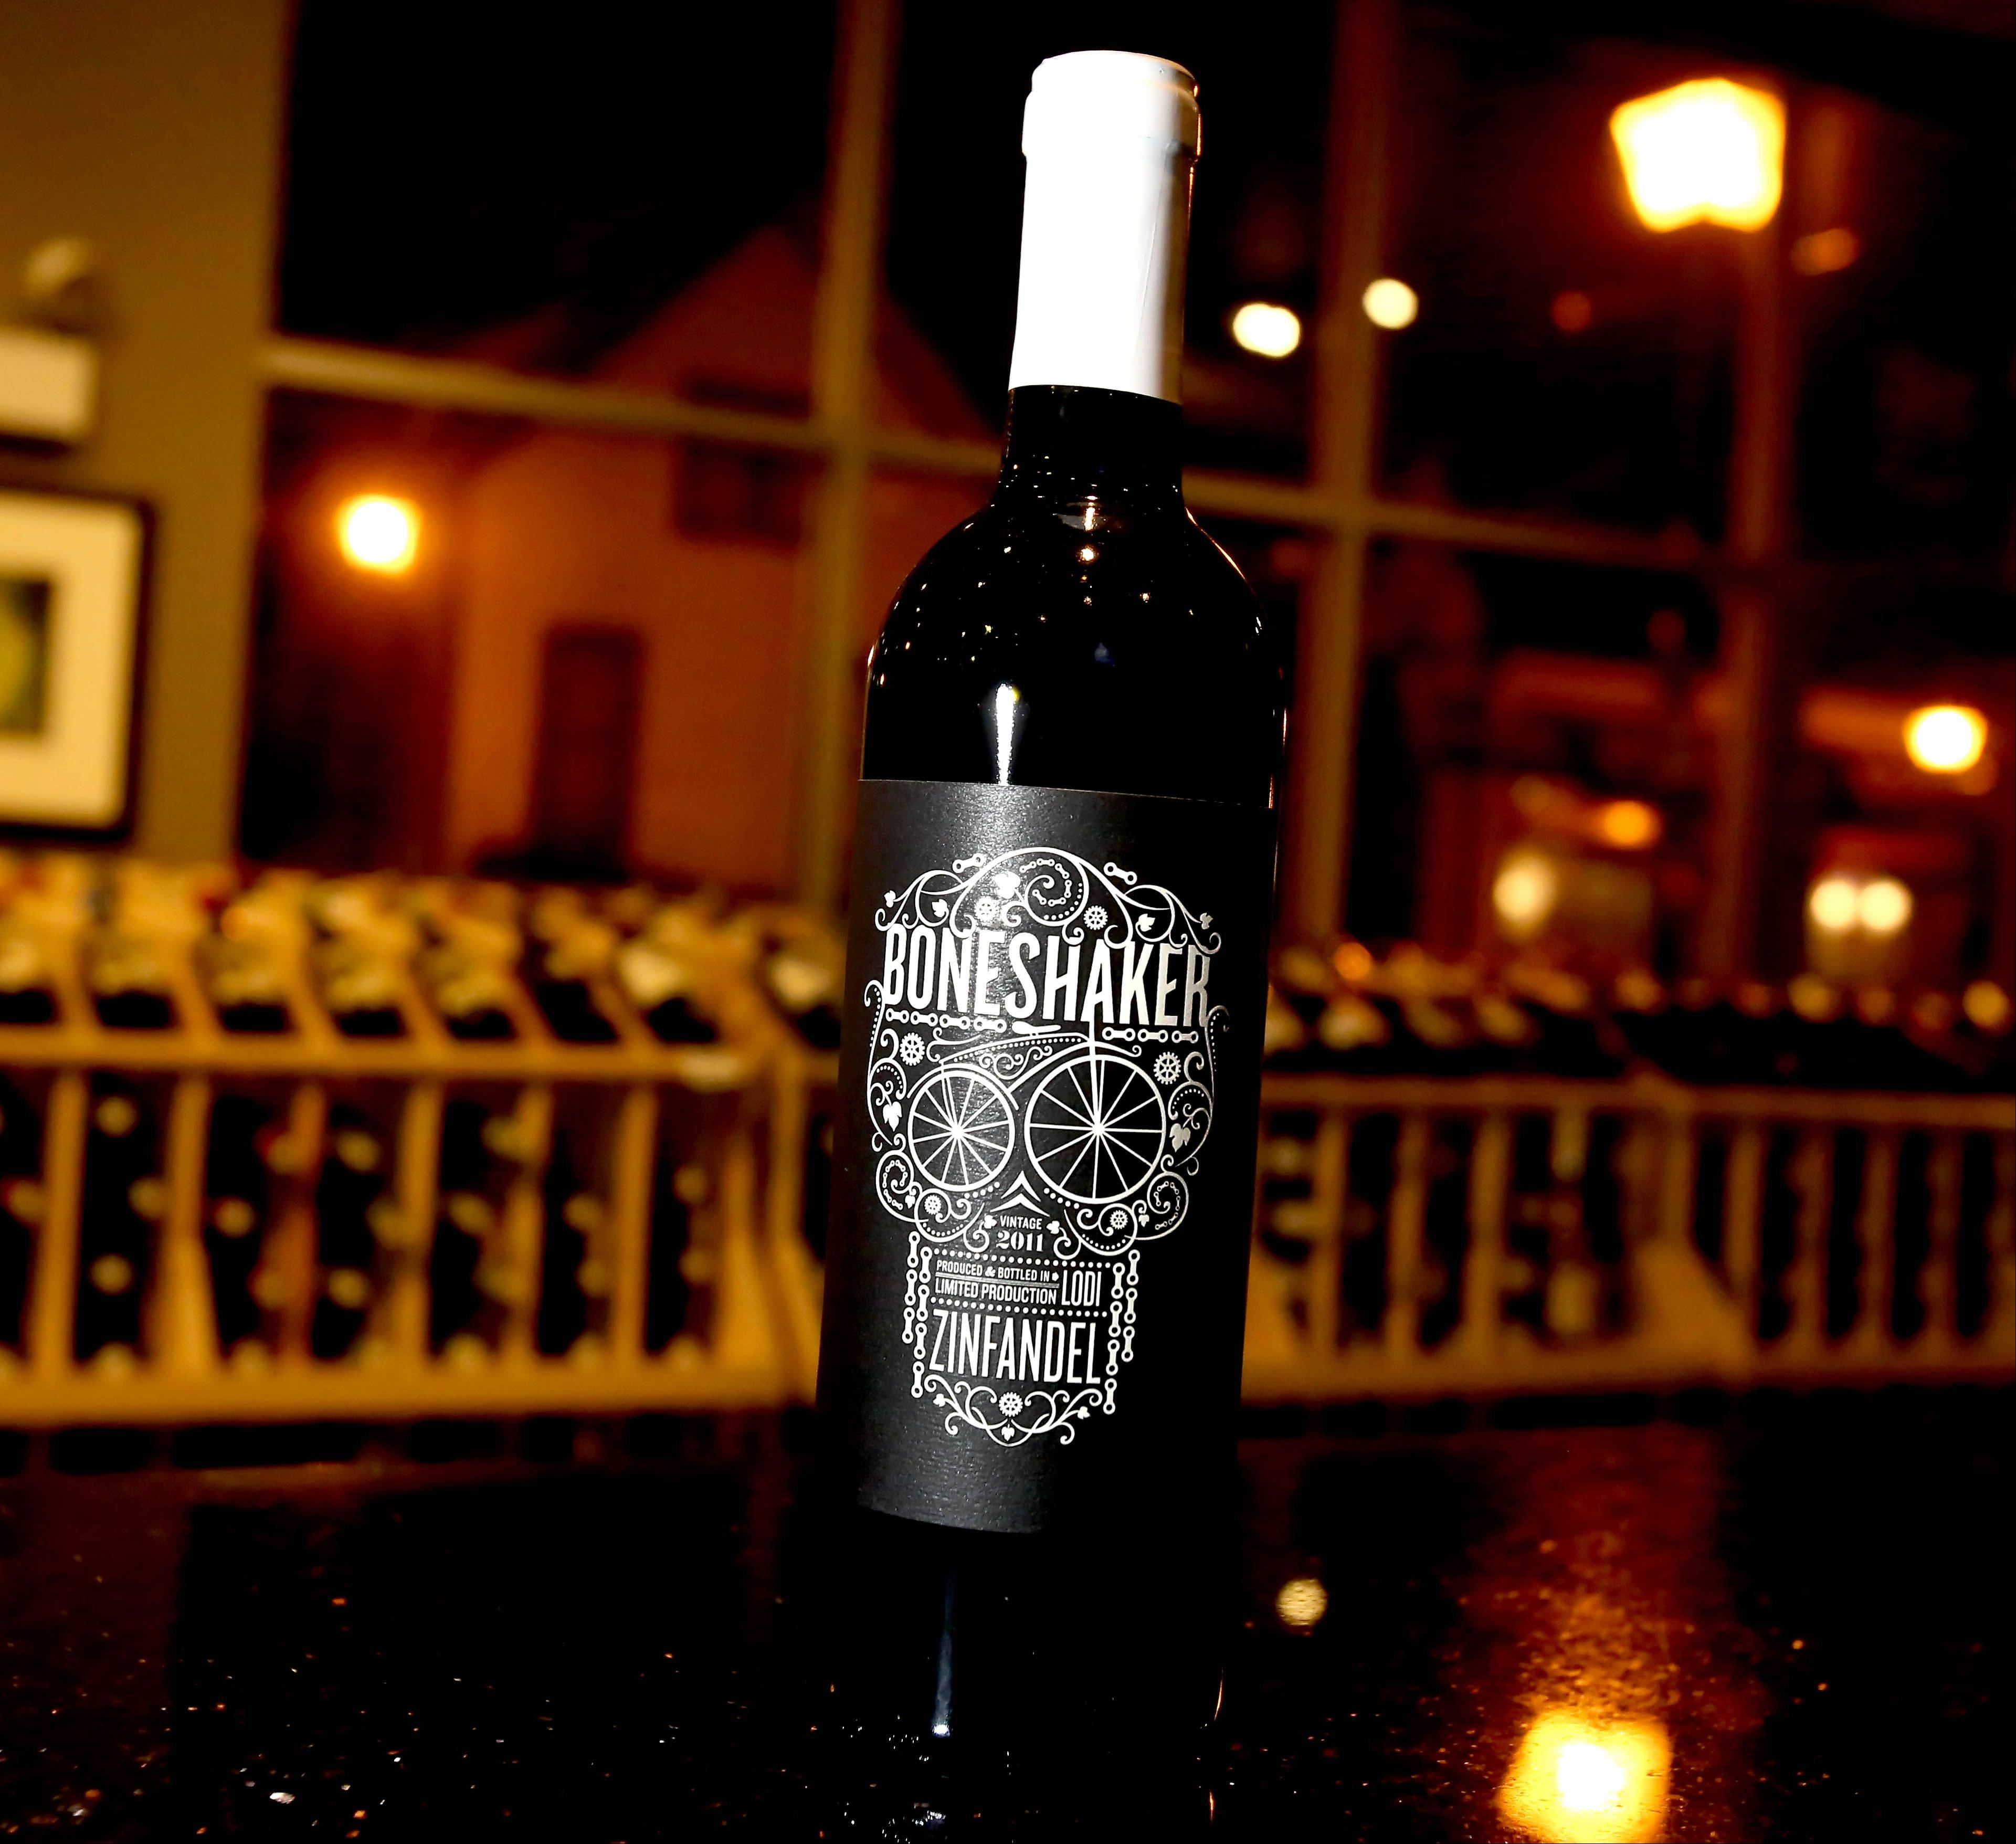 Boneshaker Zinfandel is one of the more popular wines at The Vino Cellar.